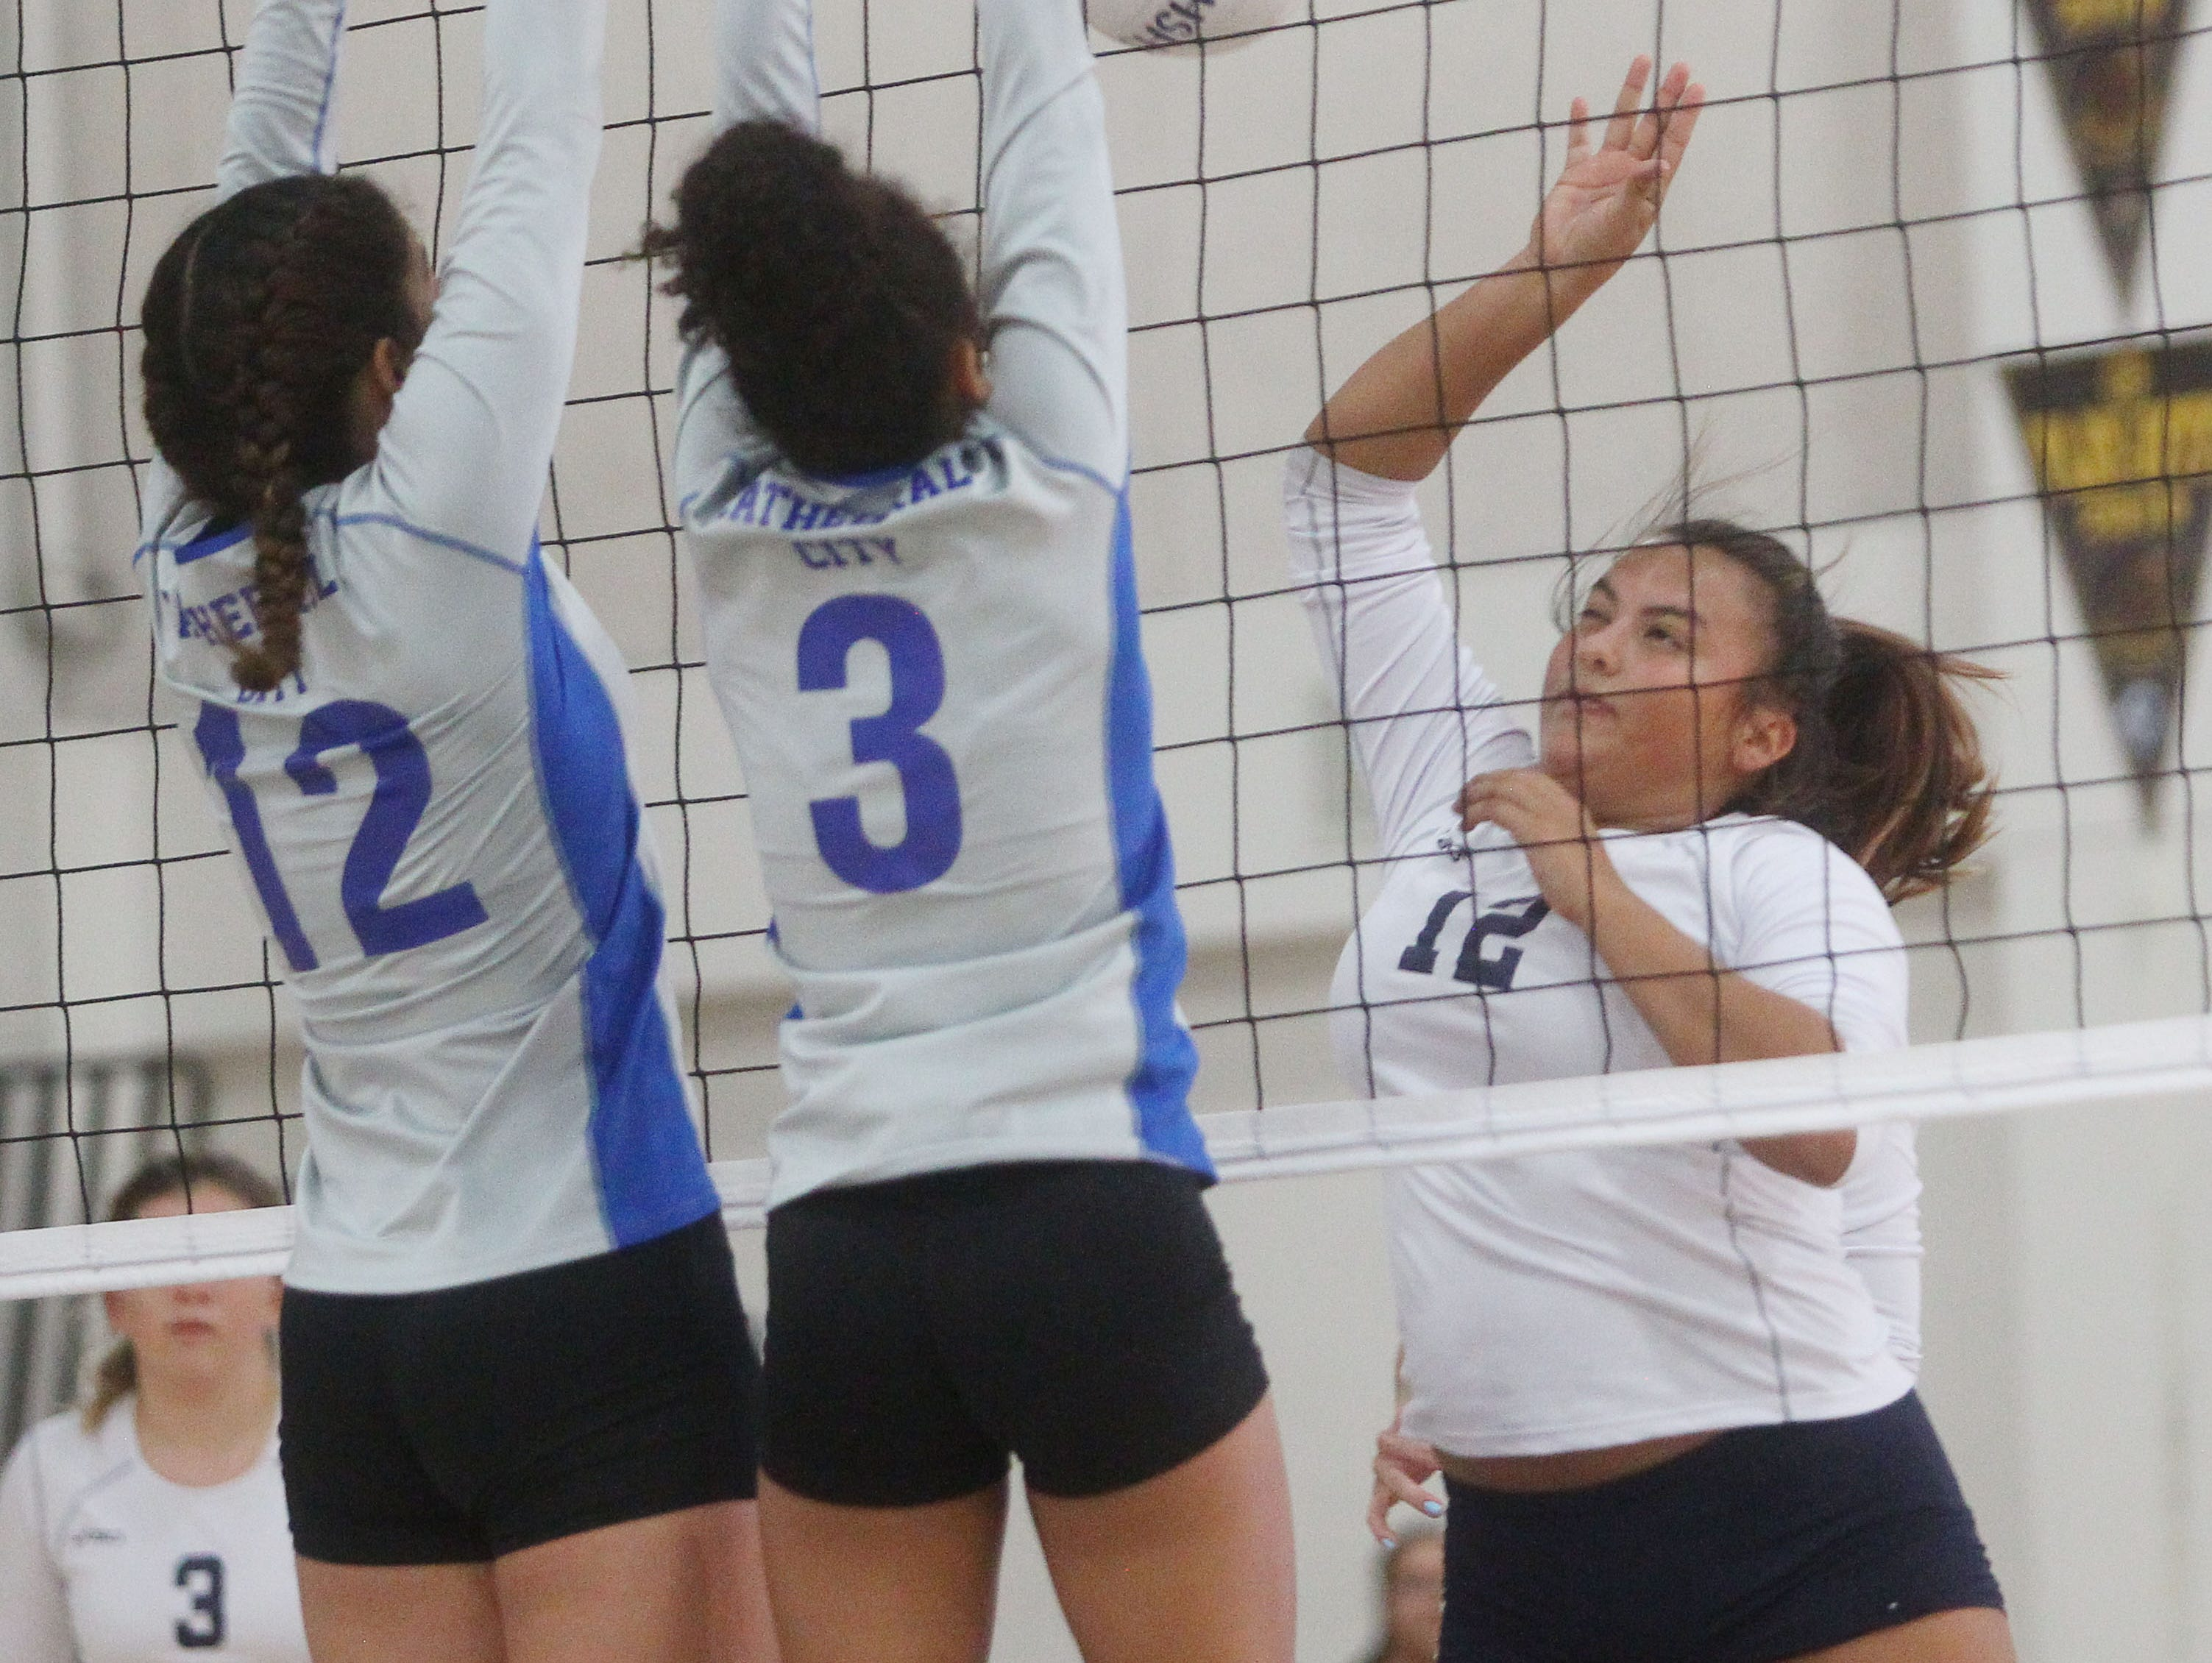 Desert Hot Springs High School girls varsity volleyball team, in white, hosted Cathedral City High School at home. Cathedral City won the game.